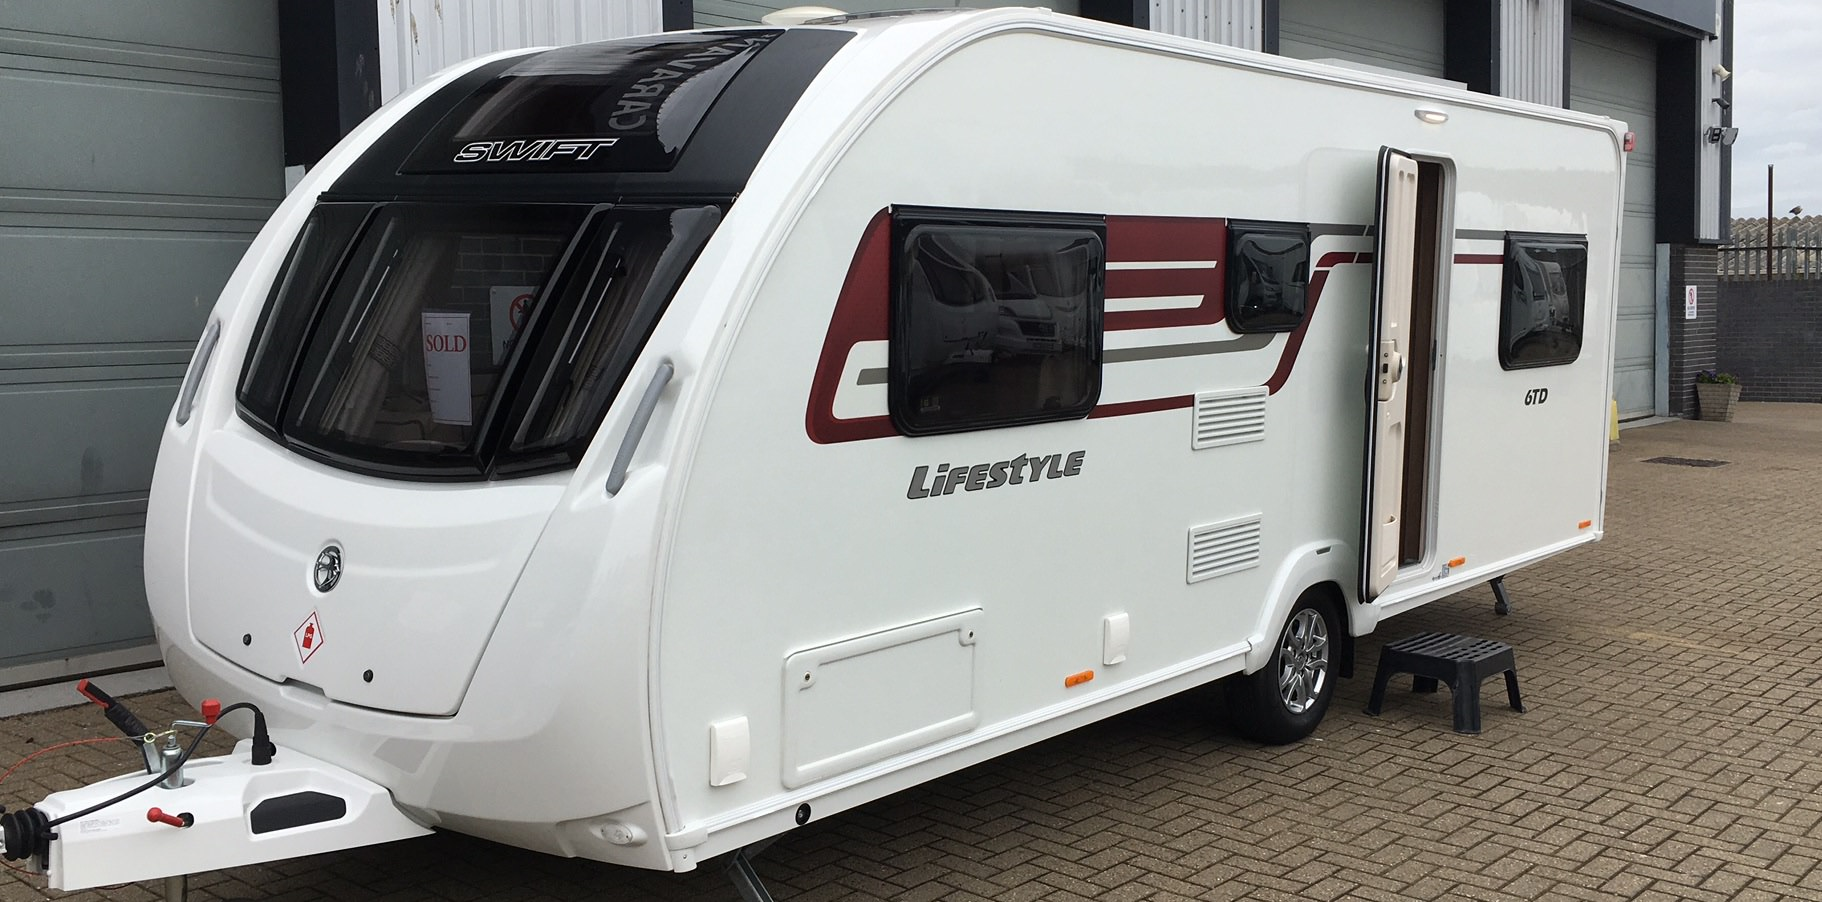 Caravan Pre-Purchase Inspection